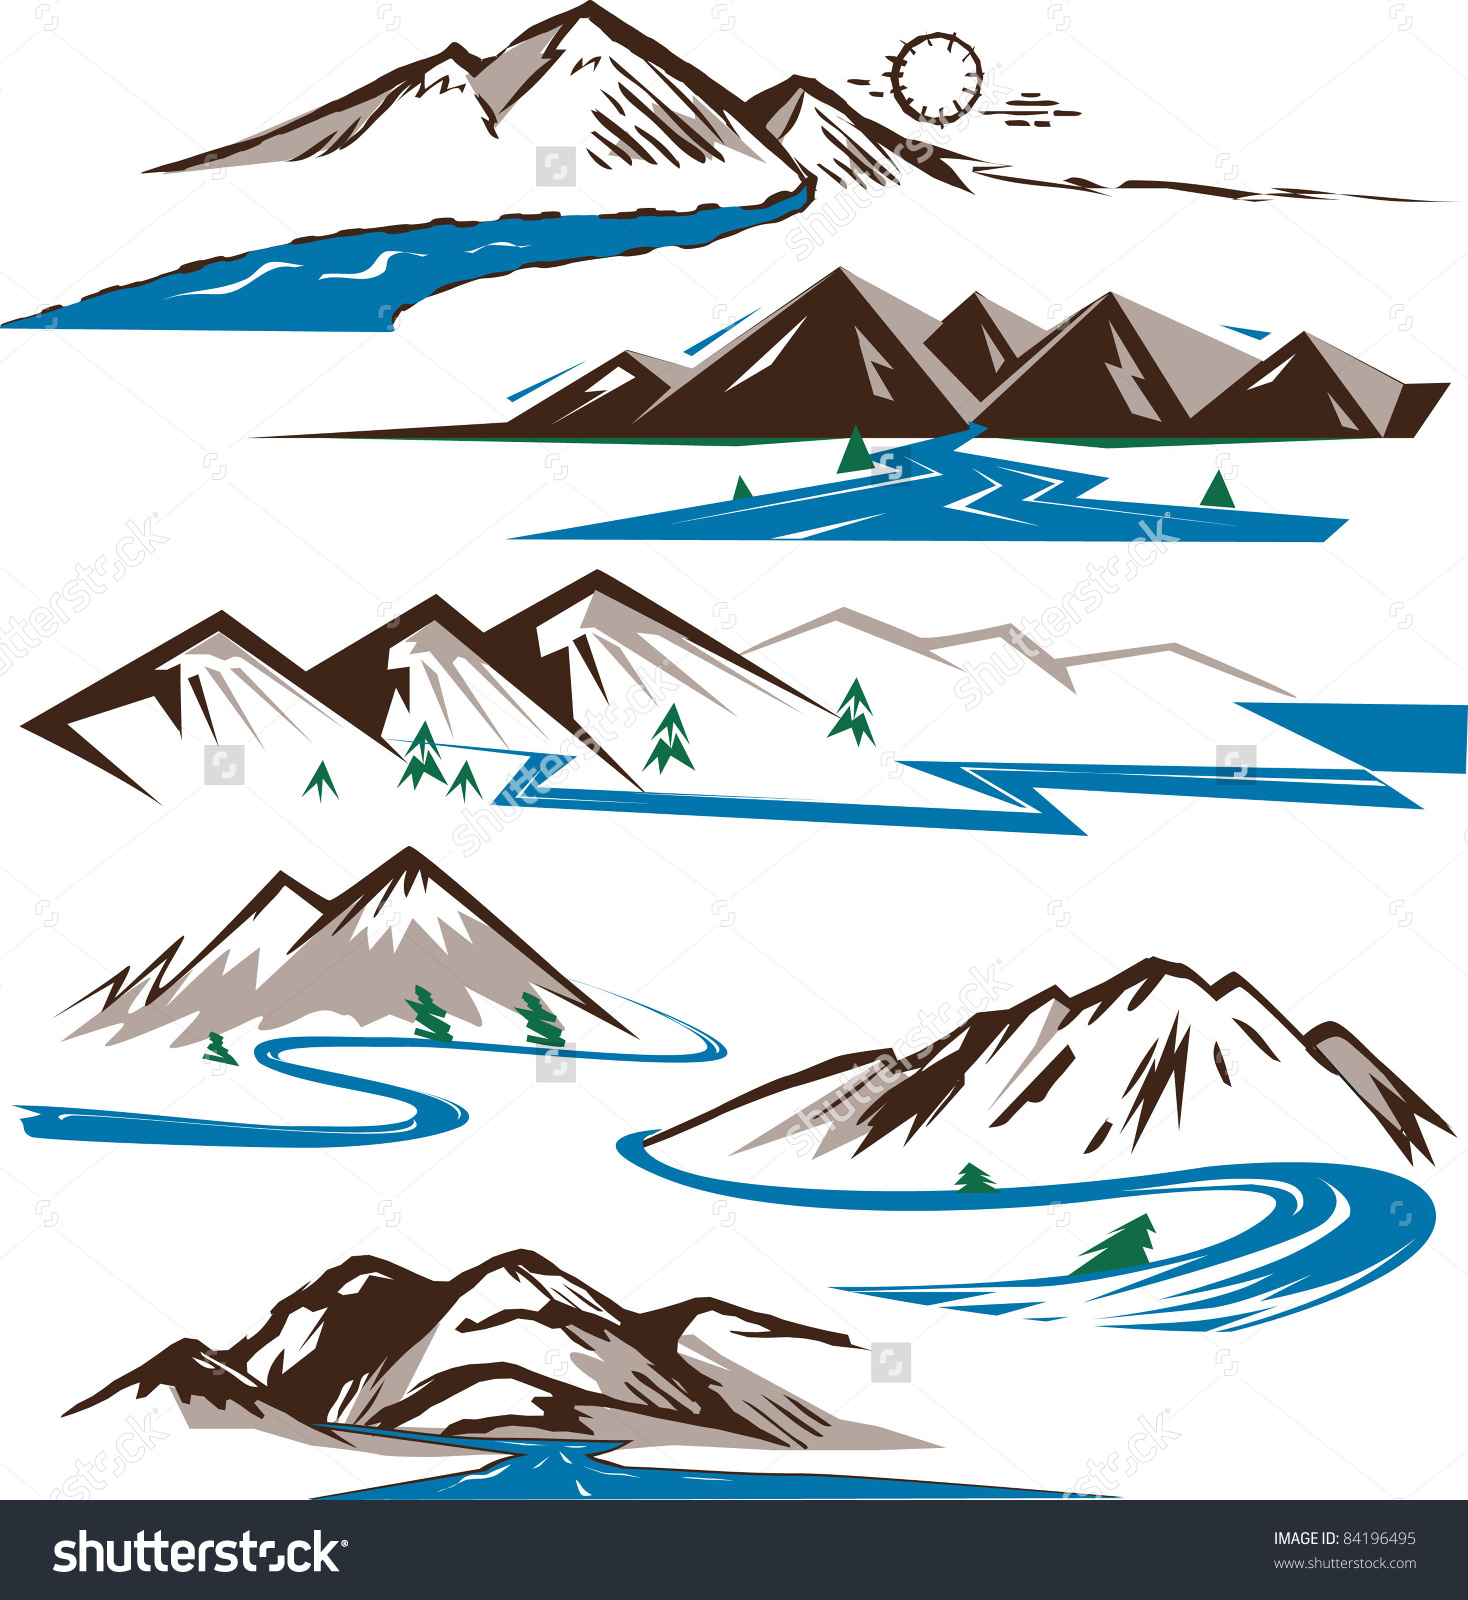 Mountain and river clipart - ClipartFest image free stock